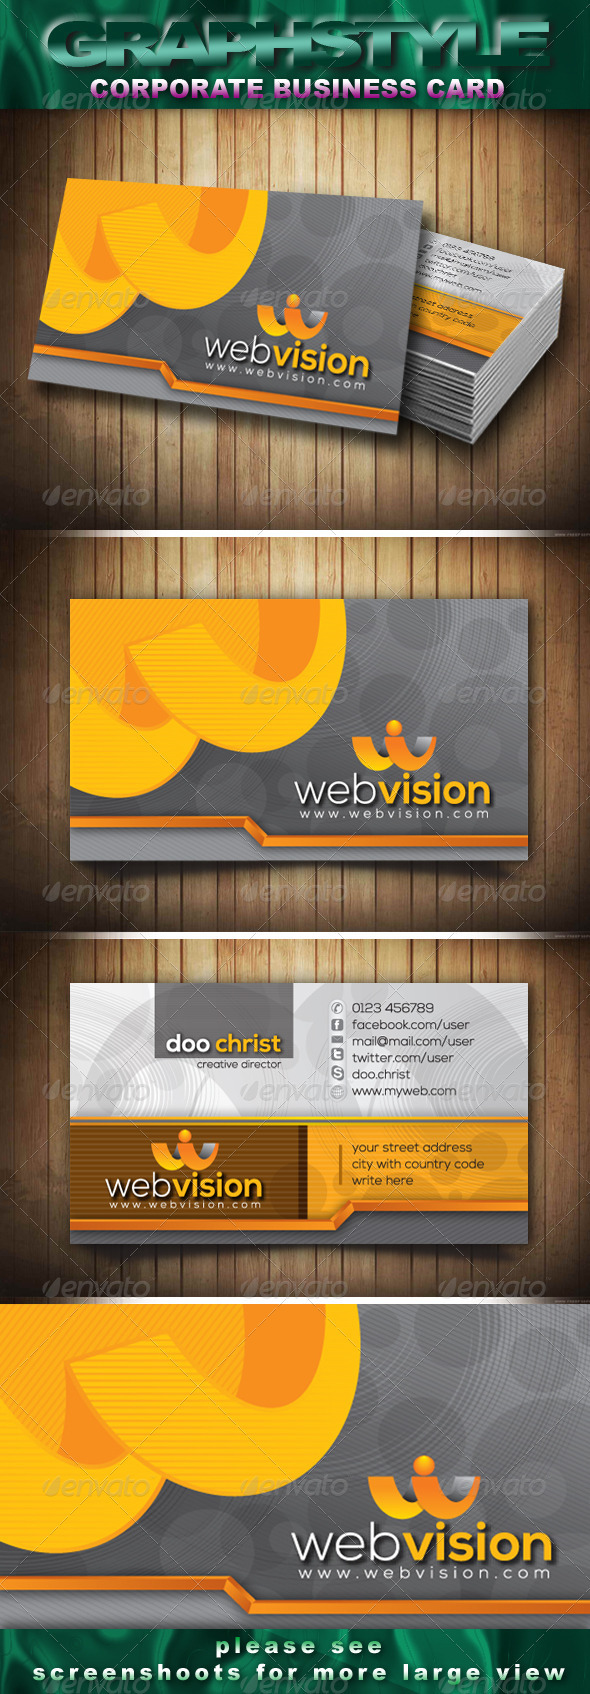 GraphicRiver Webvision Corporate Business Card 3641802